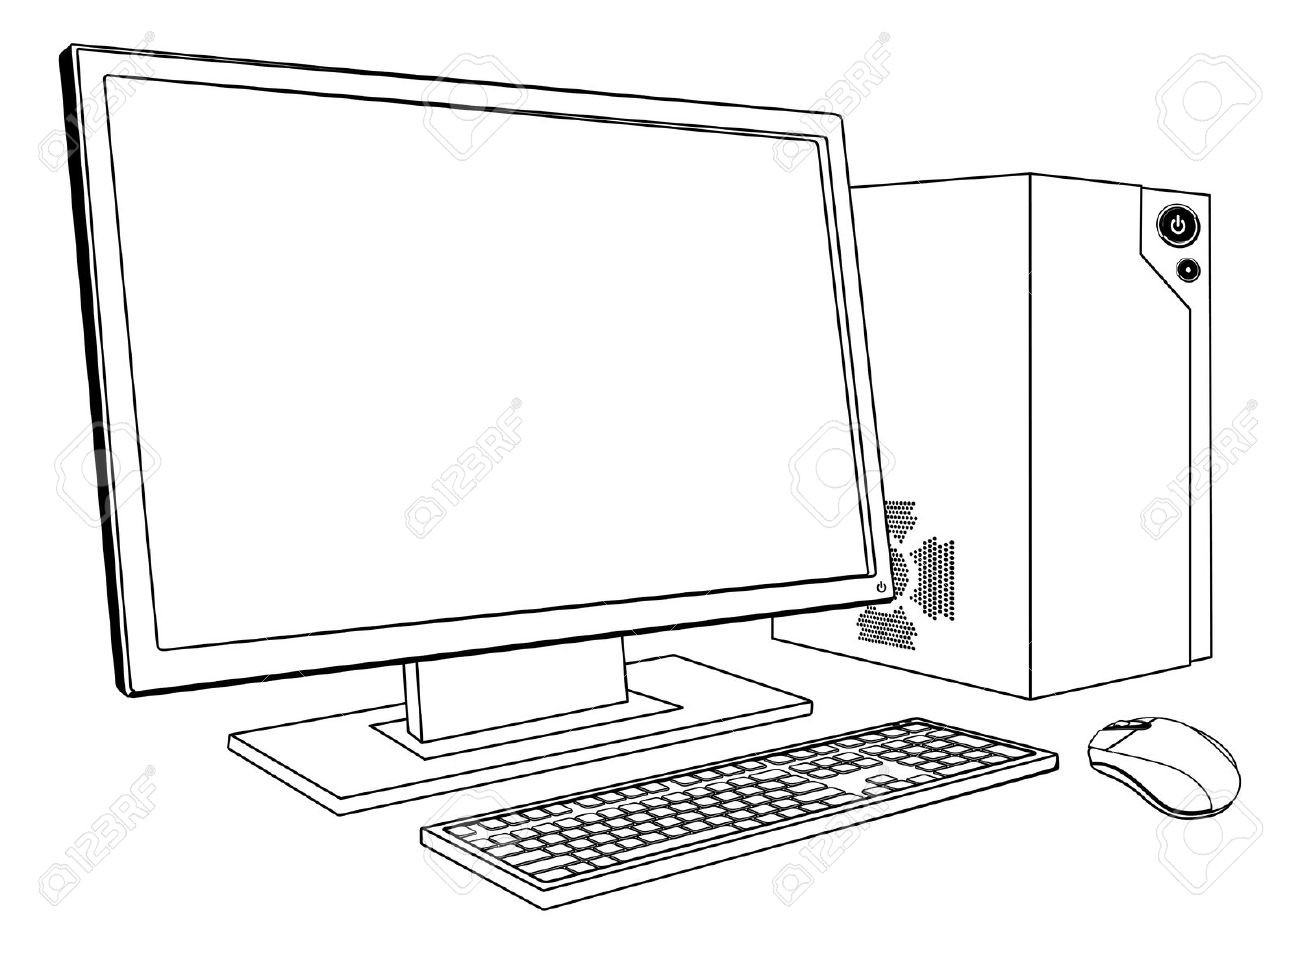 Computer keyboard clipart black and white clip art royalty free stock Computer black and white clipart - ClipartFest clip art royalty free stock